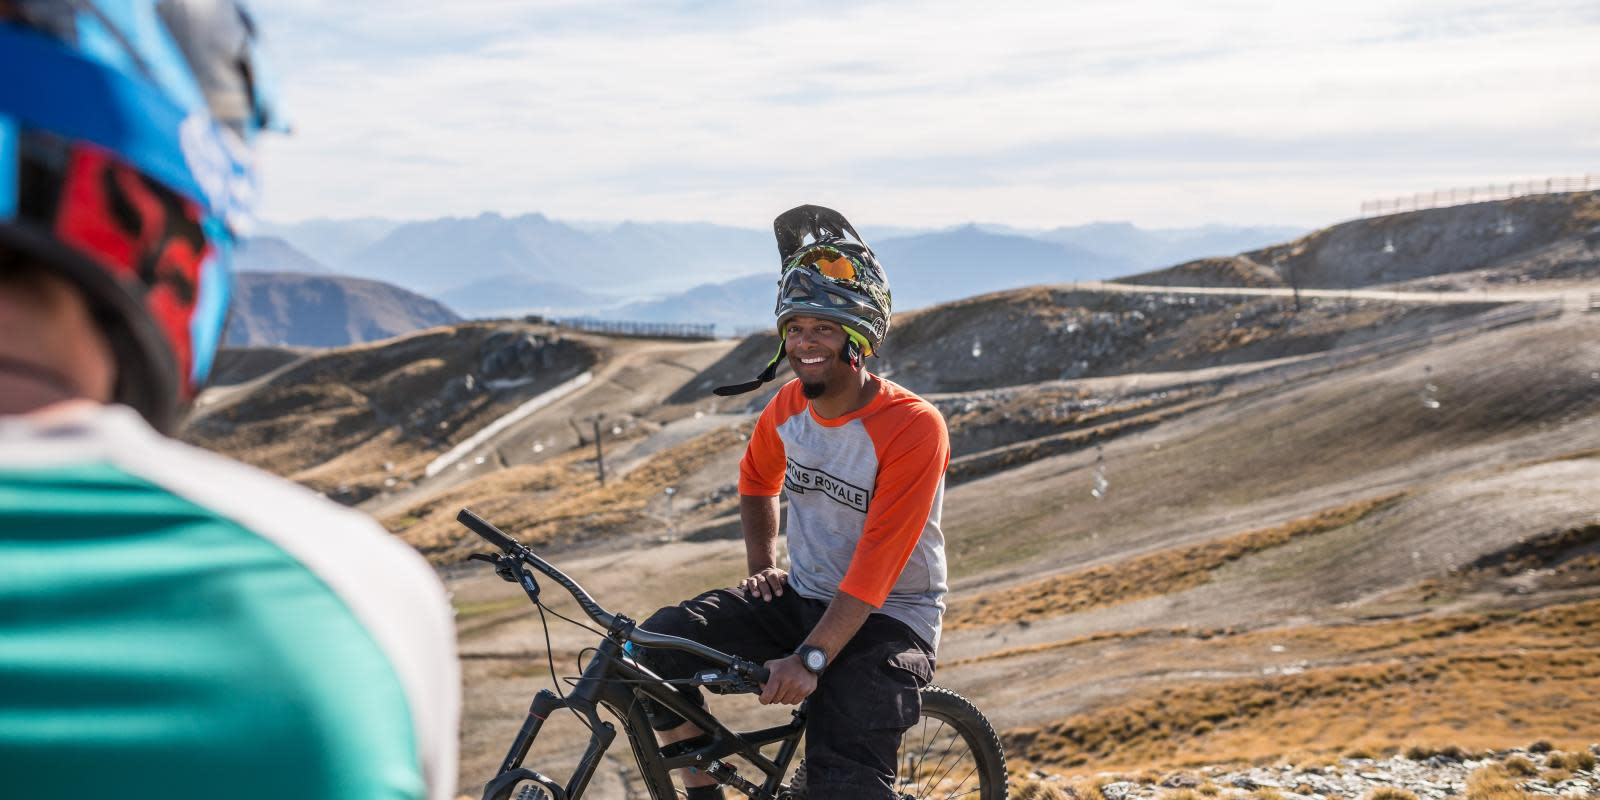 Downhill mountain biking adventure in Queenstown